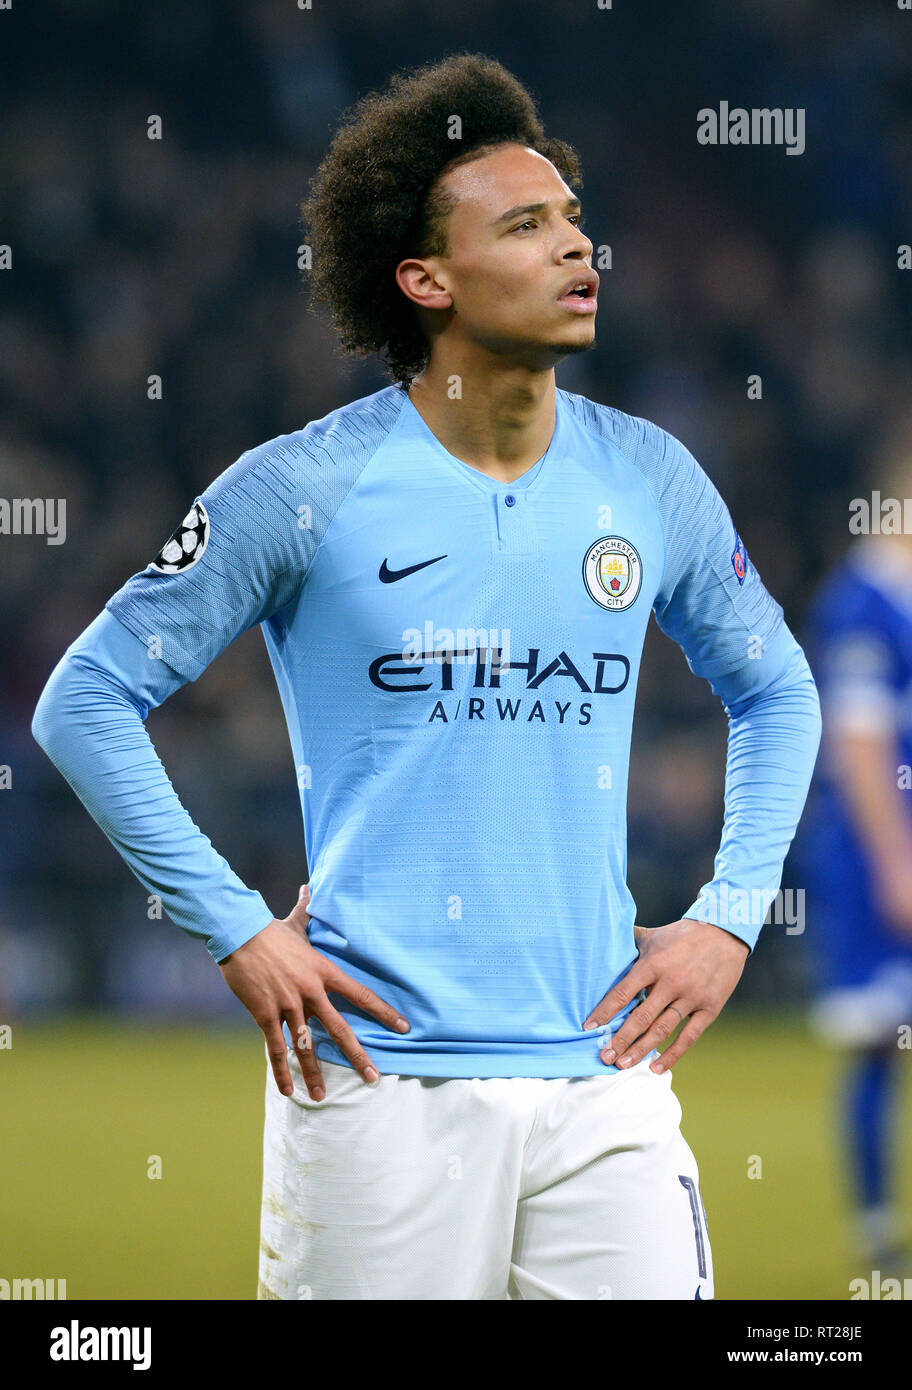 finest selection a9a06 48cd5 German player Leroy Sane of Manchester City in the first leg ...